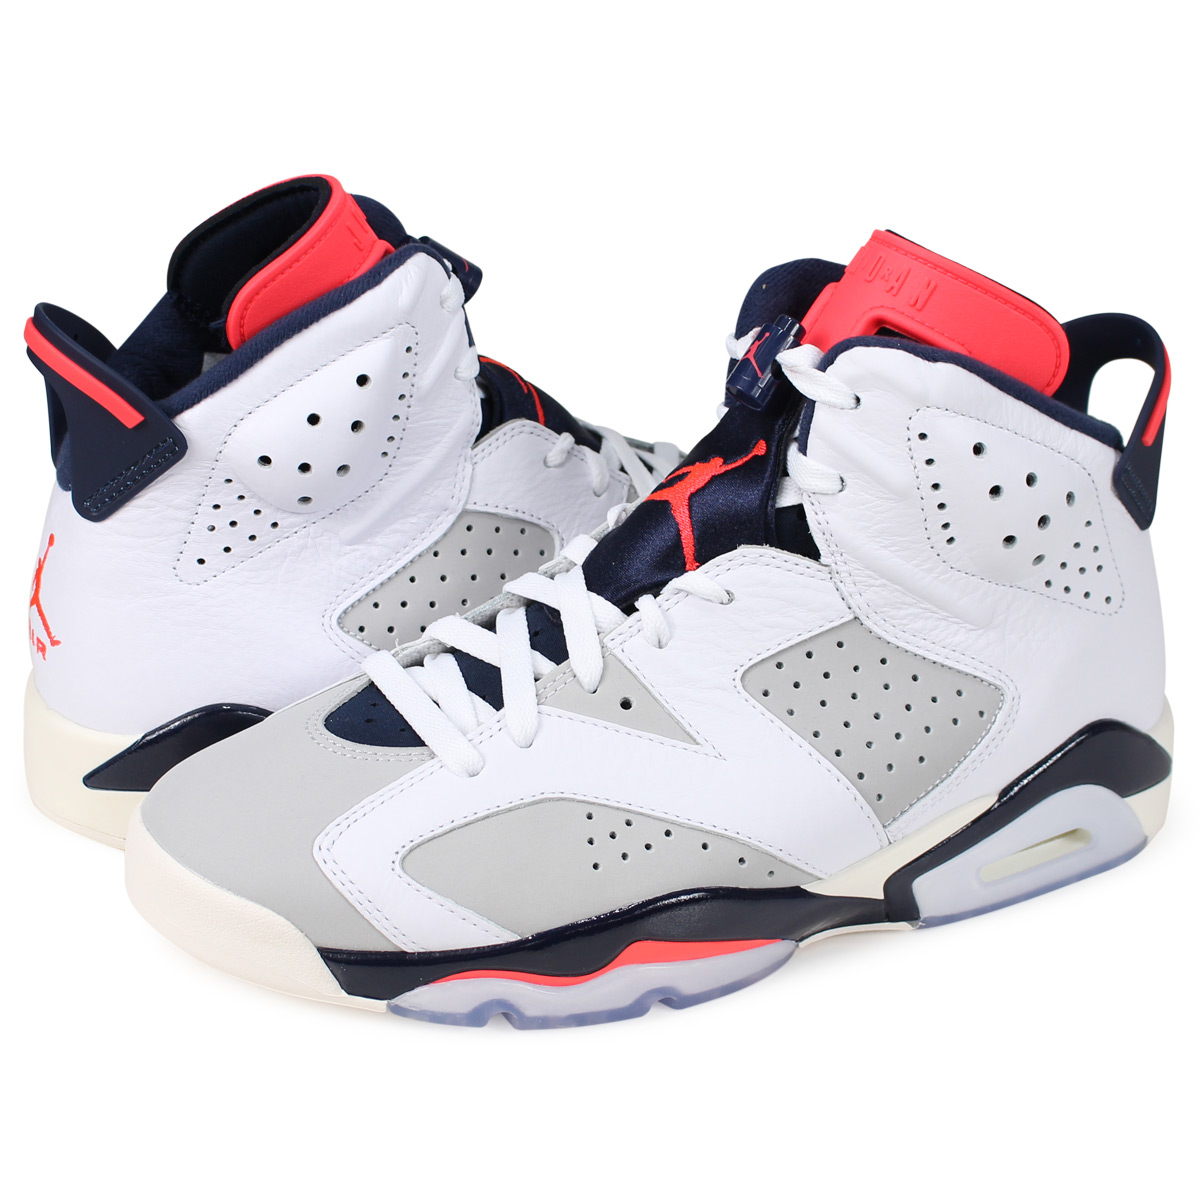 best cheap dbe7a 09bb3 Nike NIKE Air Jordan 6 nostalgic sneakers men AIR JORDAN 6 RETRO TINKER  white 384,664-104